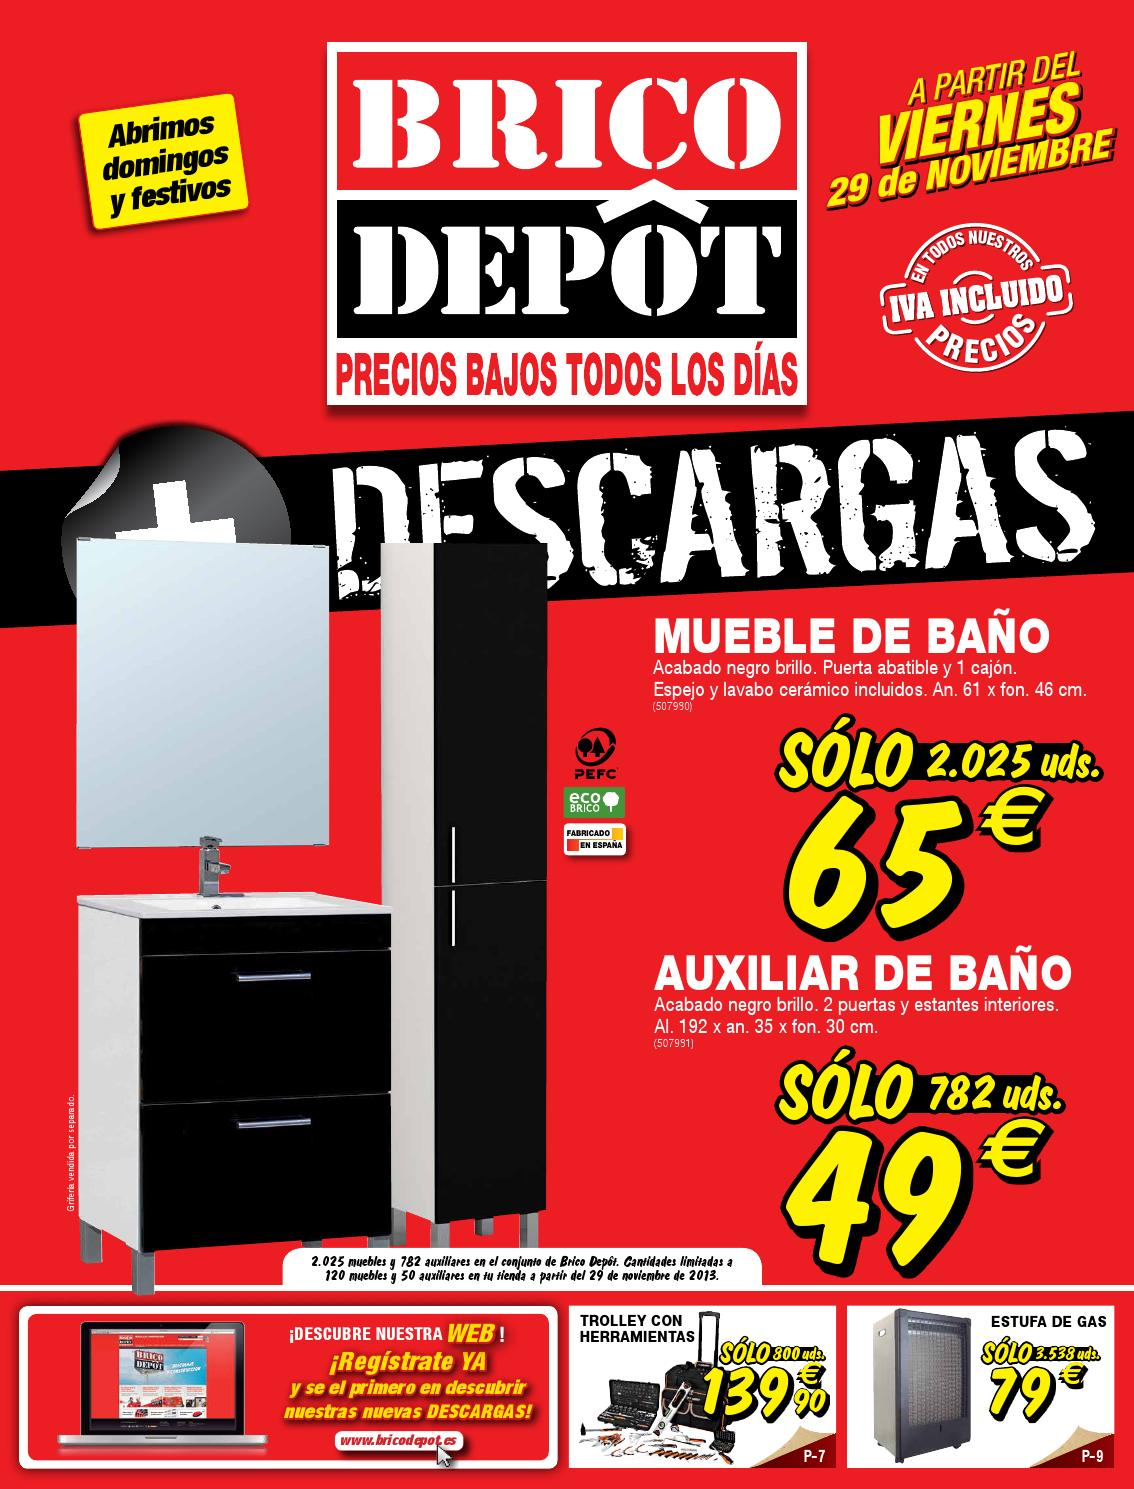 Catalogo brico depot by issuu - Brico depot banos catalogo ...